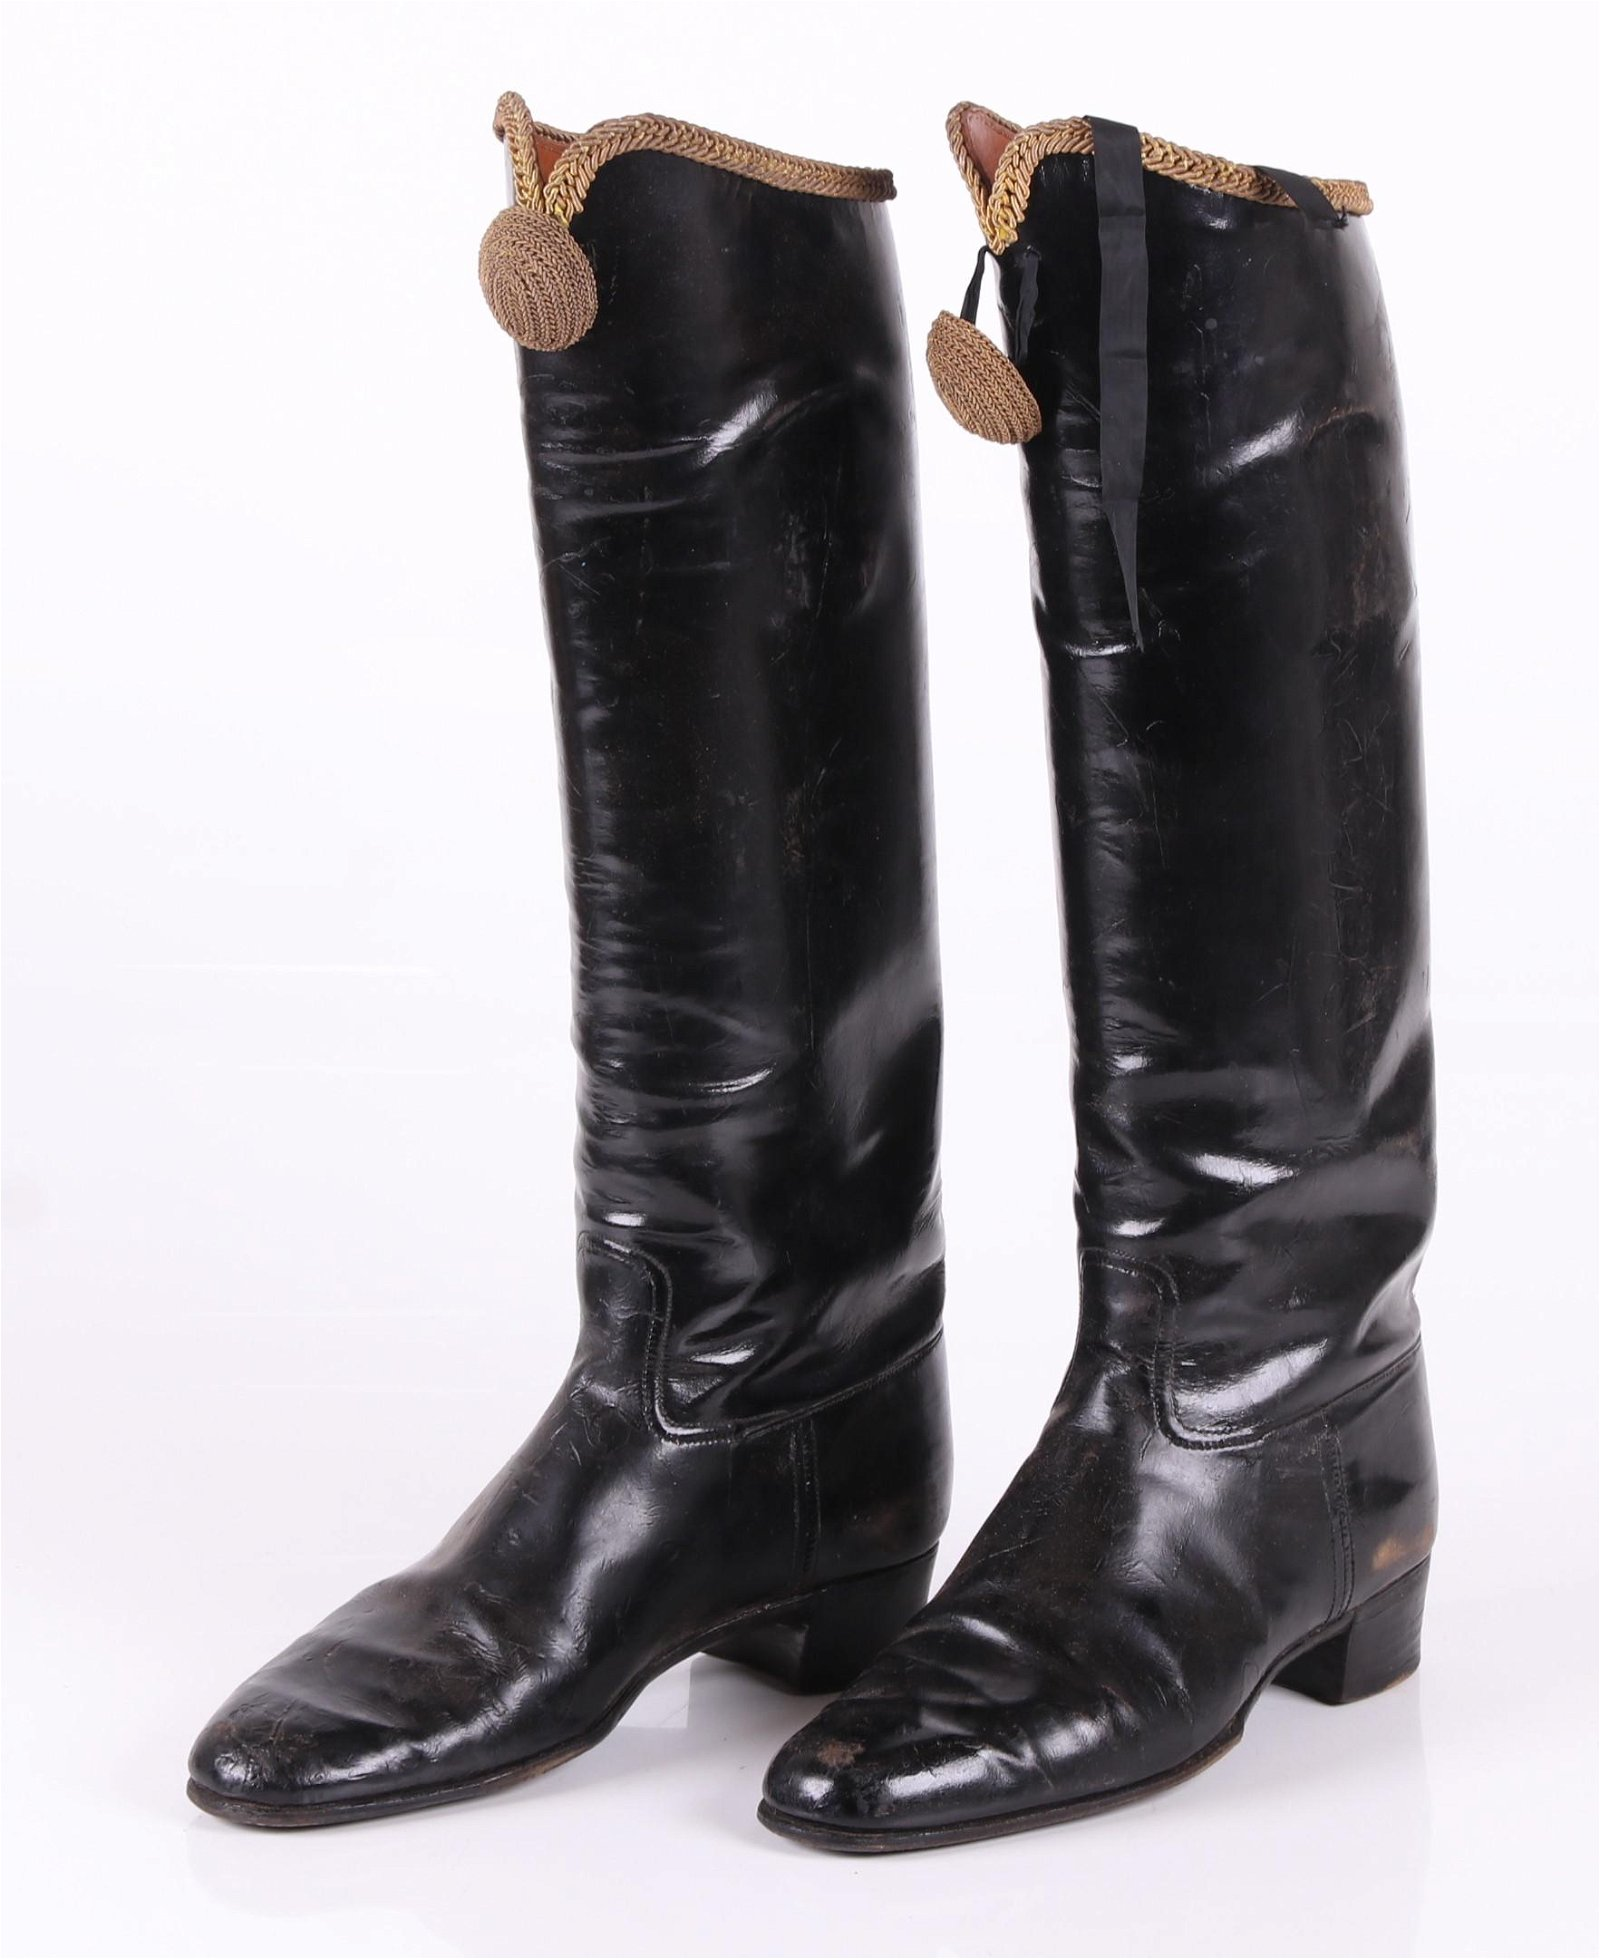 A Pair of Leather Military Boots, Hussars